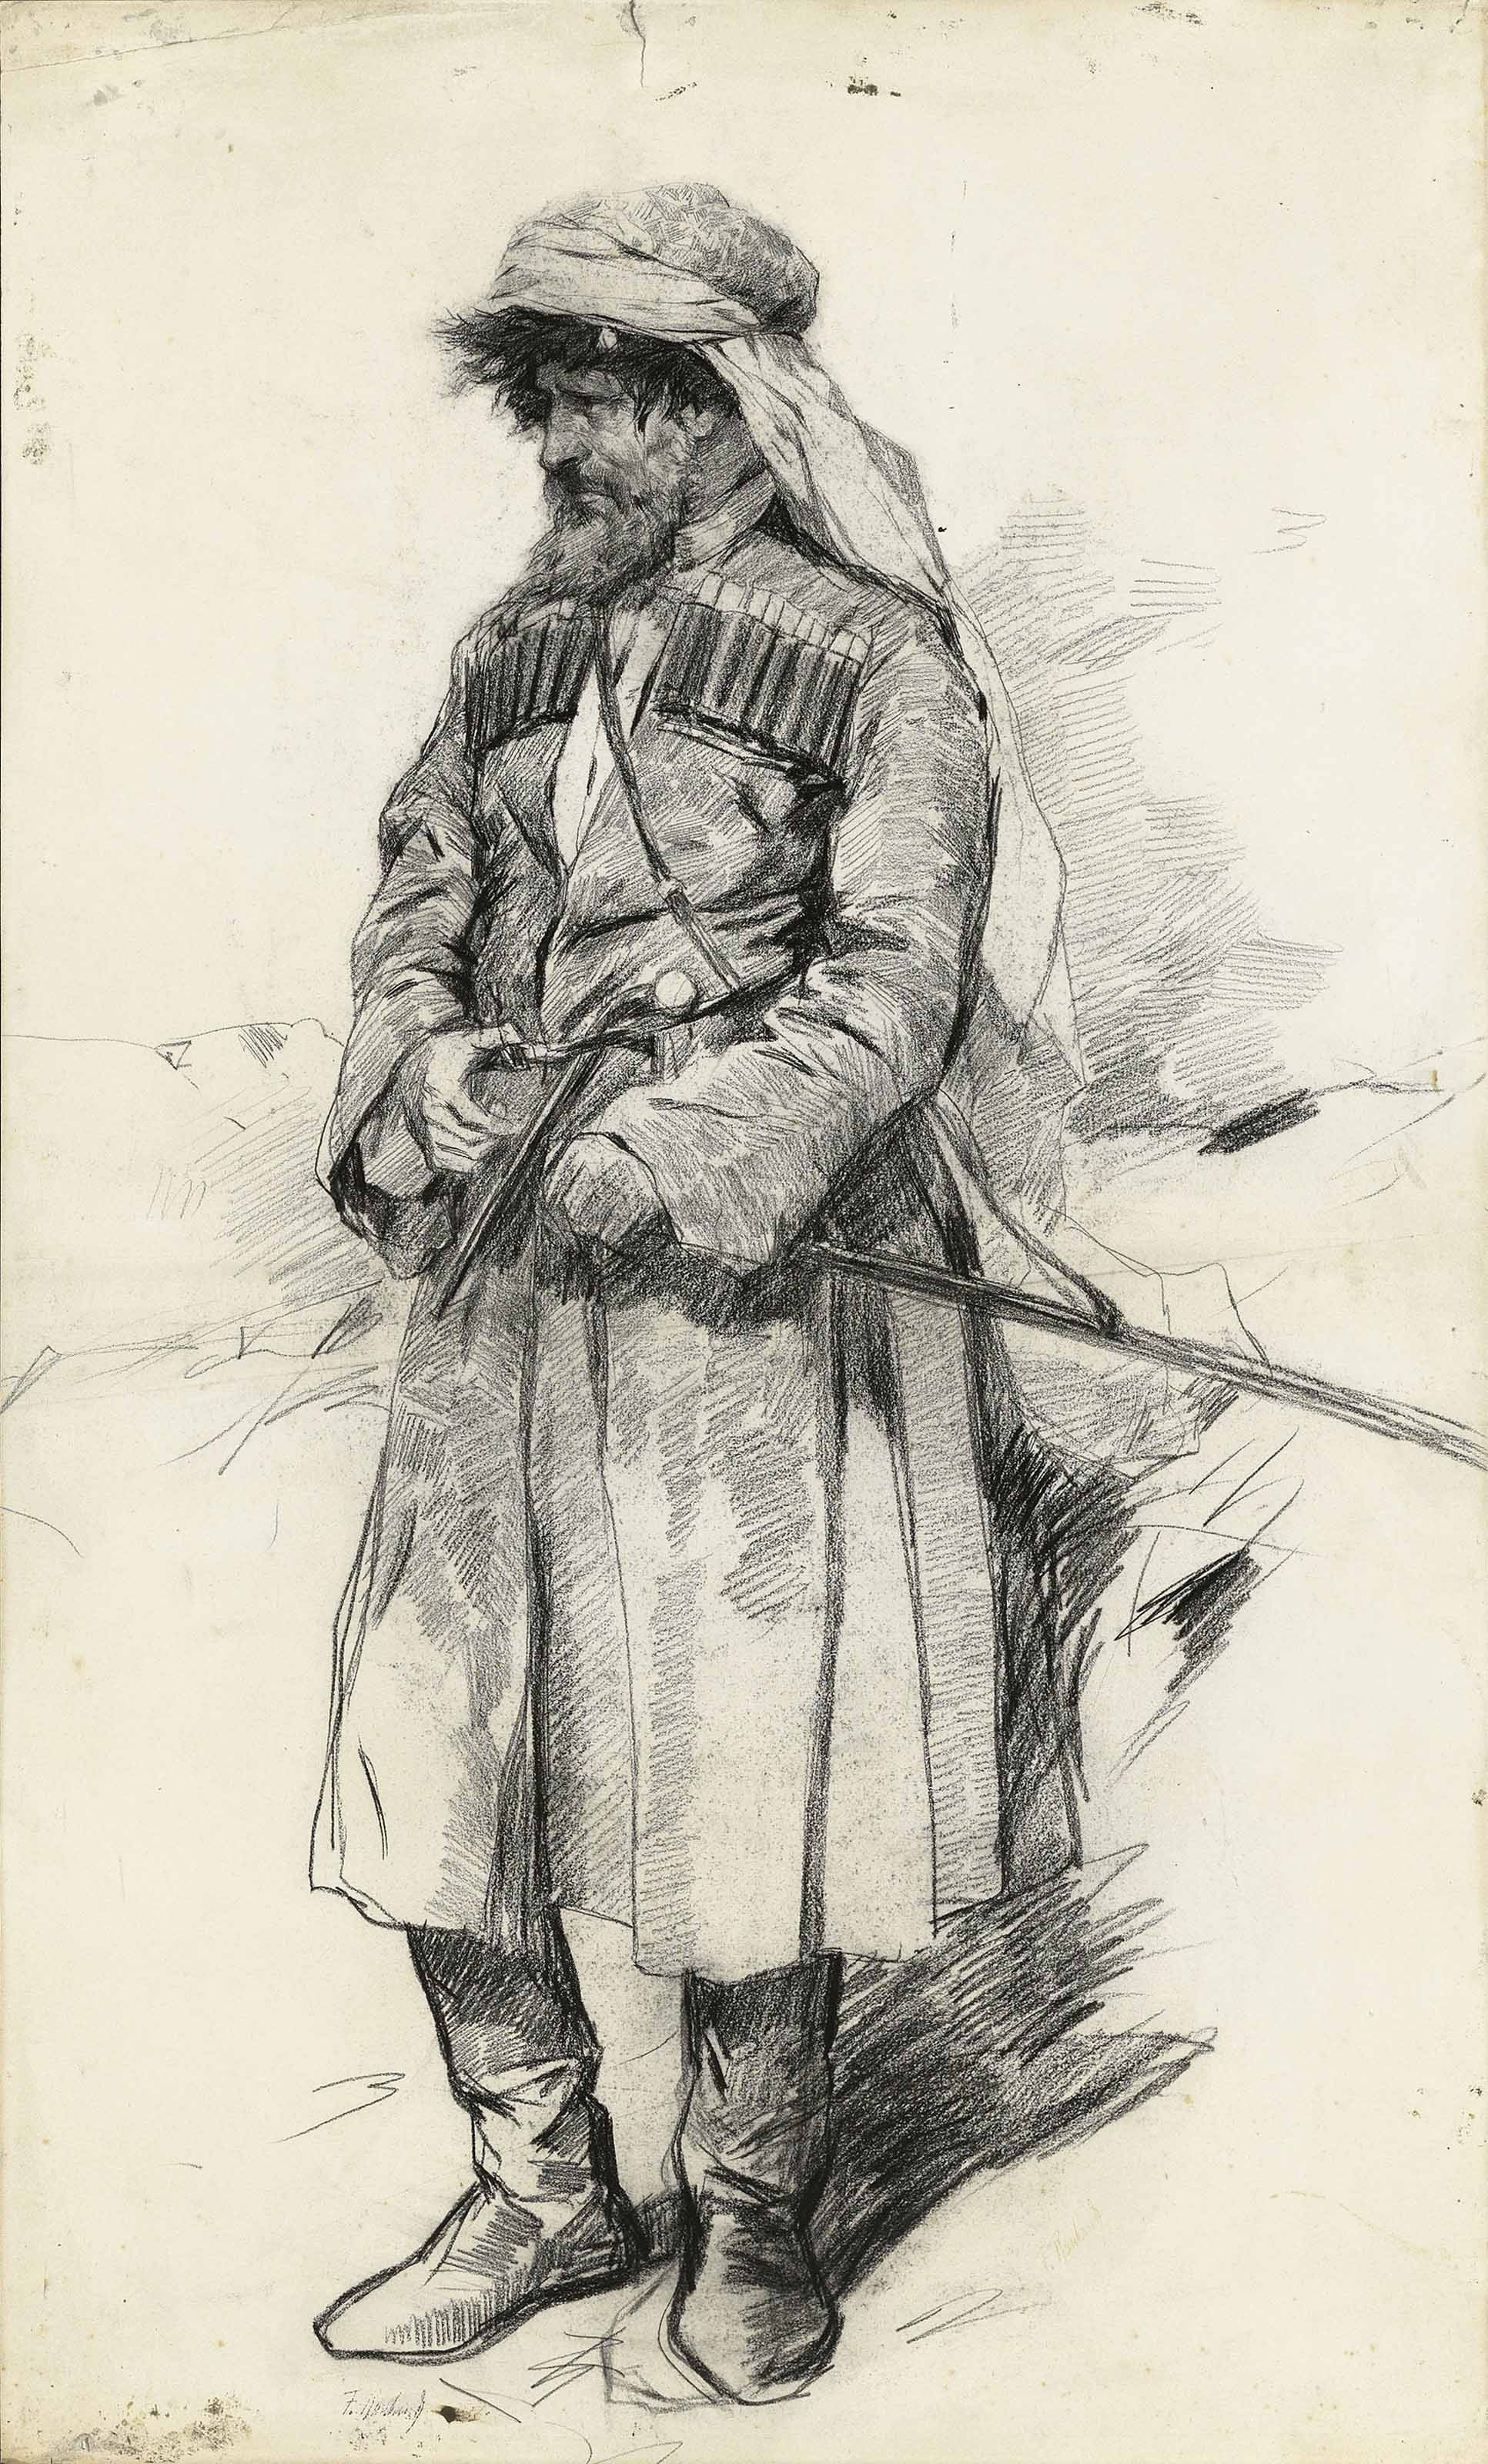 Study of Imam Shamil (1797-1871) for 'The surrender of aul Gunib and imprisonment of Imam Shamil on 25 August 1859'